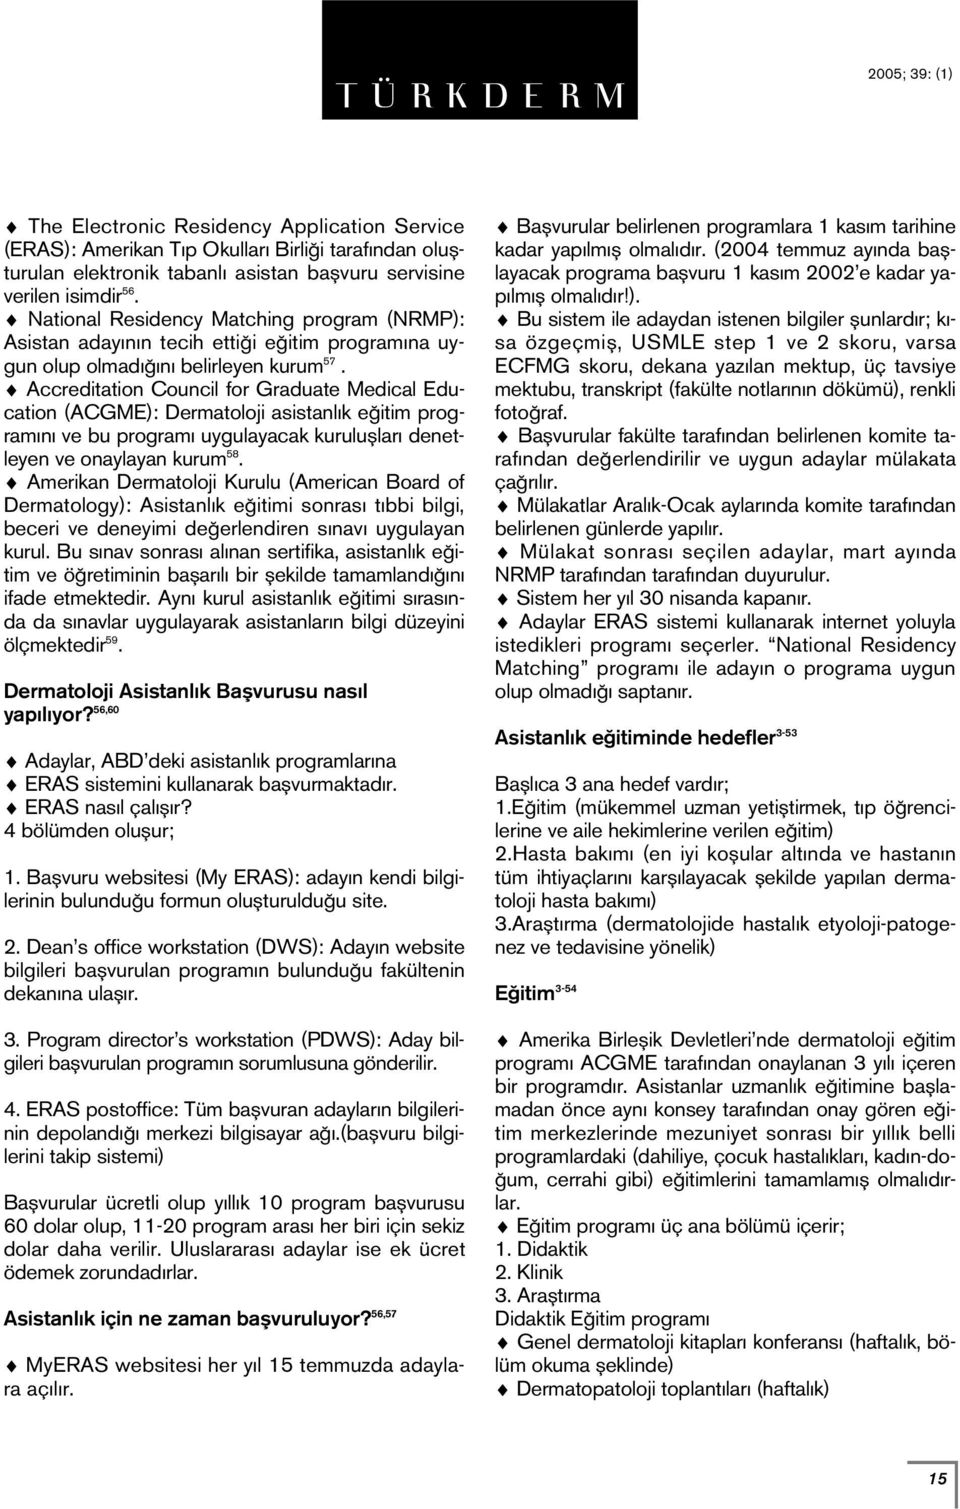 Accreditation Council for Graduate Medical Education (ACGME): Dermatoloji asistanl k e itim program n ve bu program uygulayacak kurulufllar denetleyen ve onaylayan kurum 58.